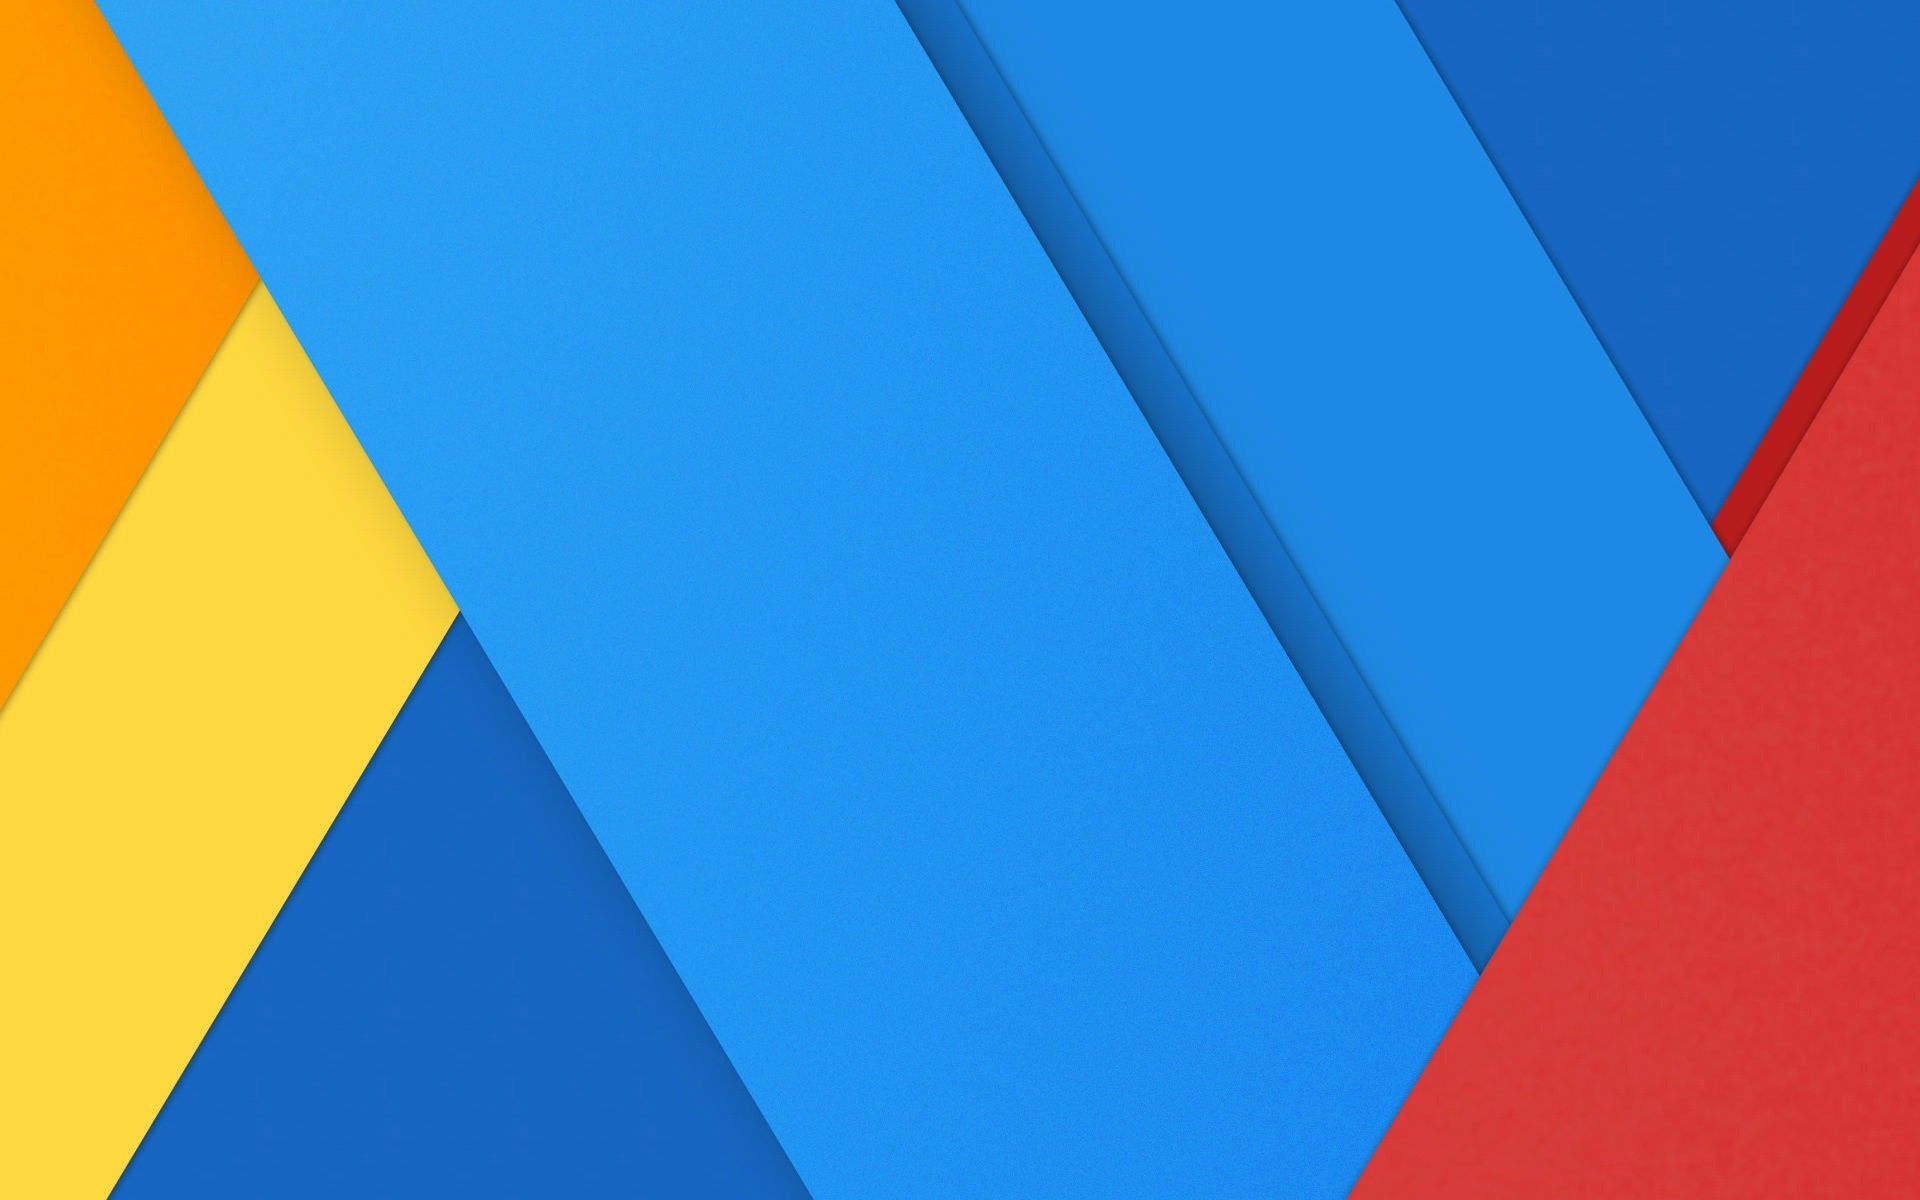 Red blue and yellow cross abstract wallpapers